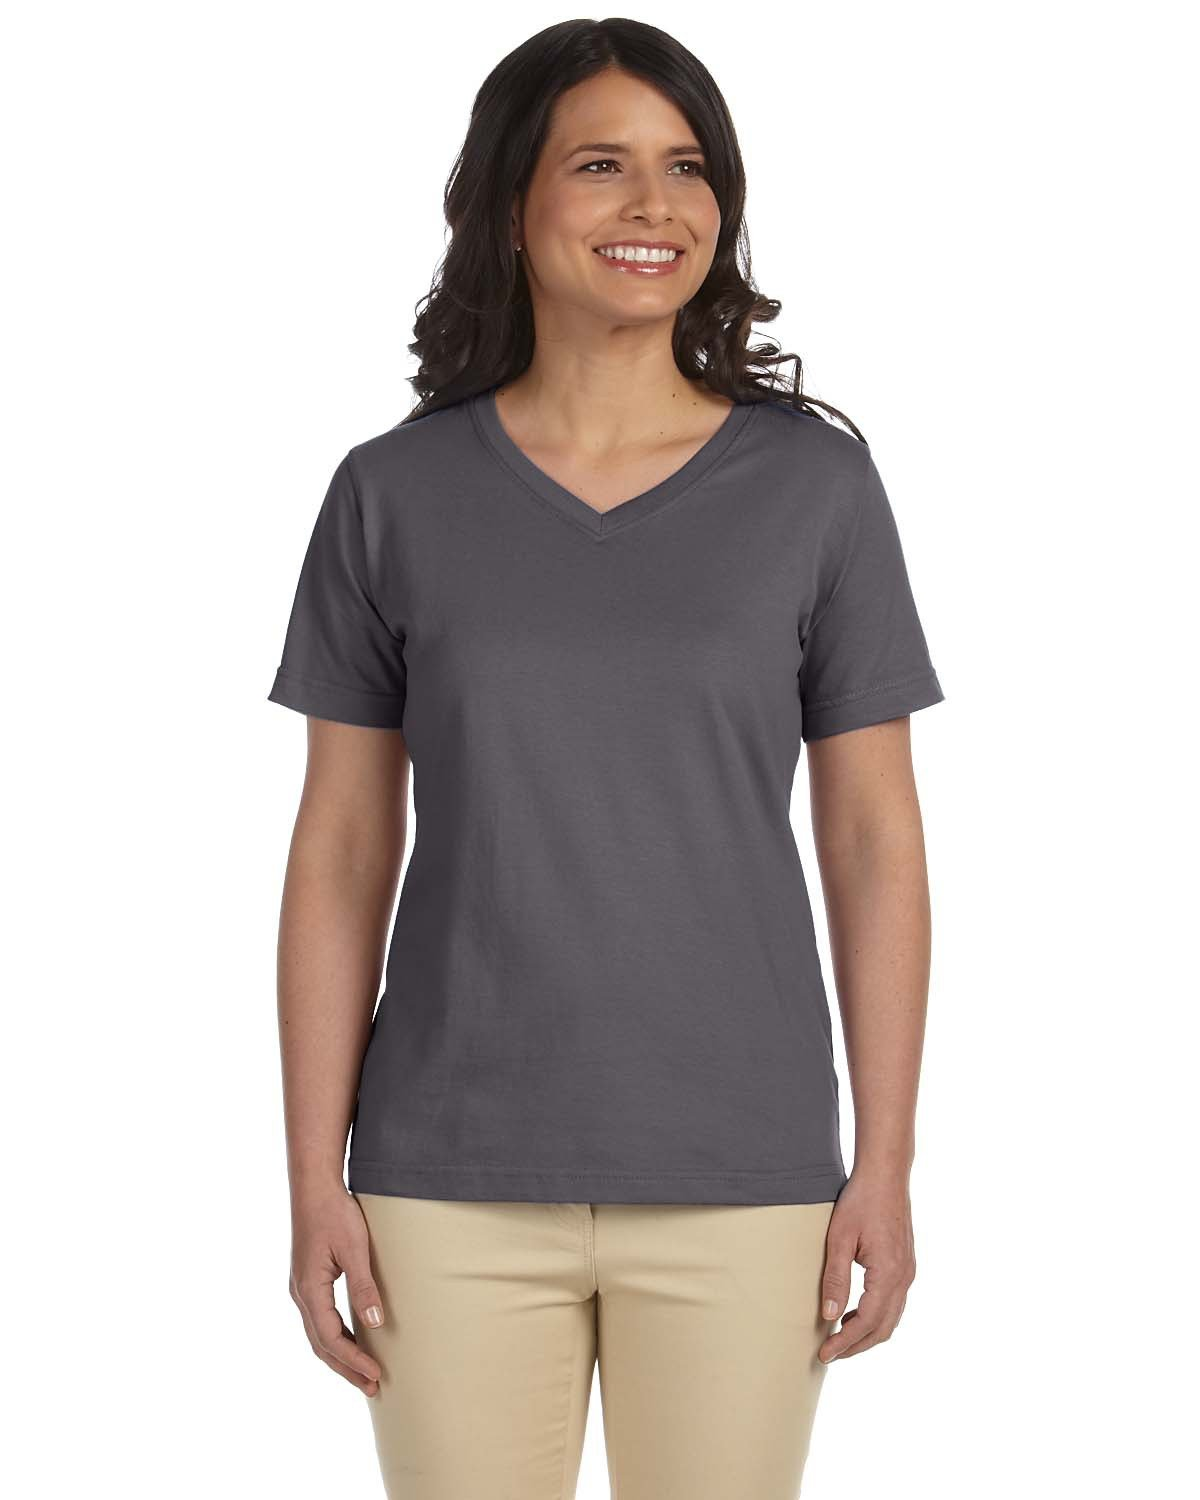 LAT Ladies' Premium Jersey V-Neck T-Shirt CHARCOAL